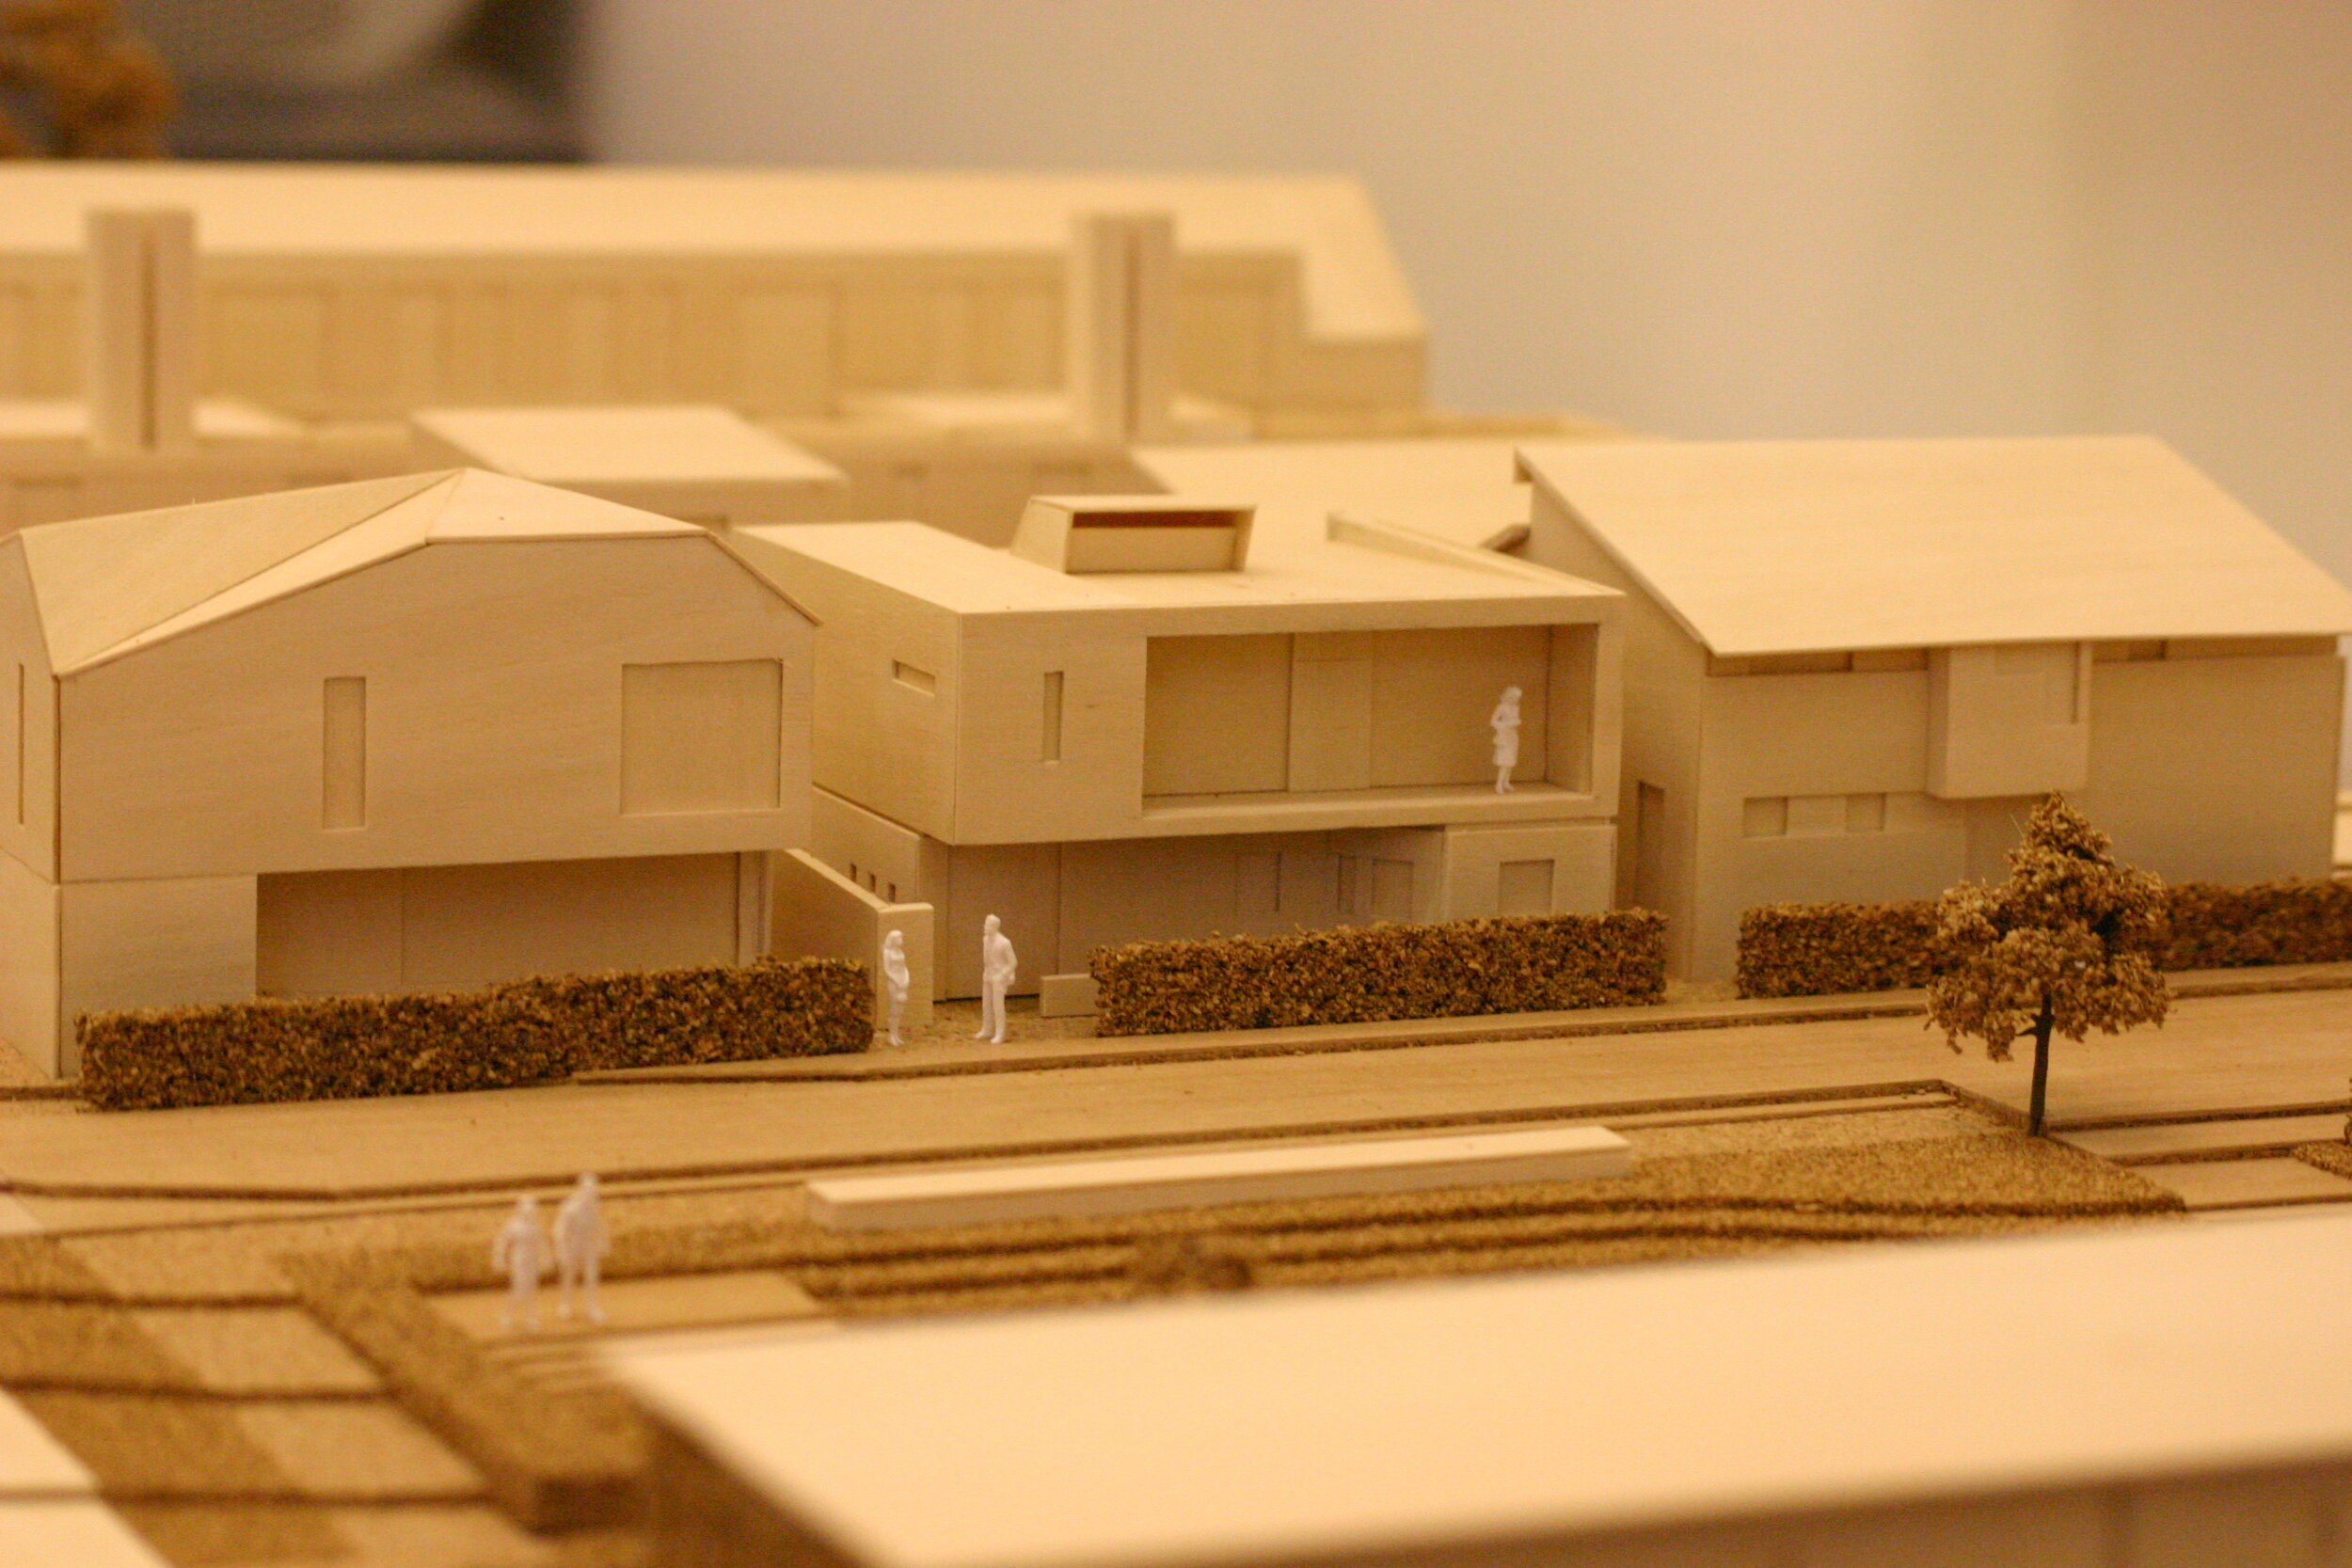 One of the early Finch & Fouracre models for NORD Architecture